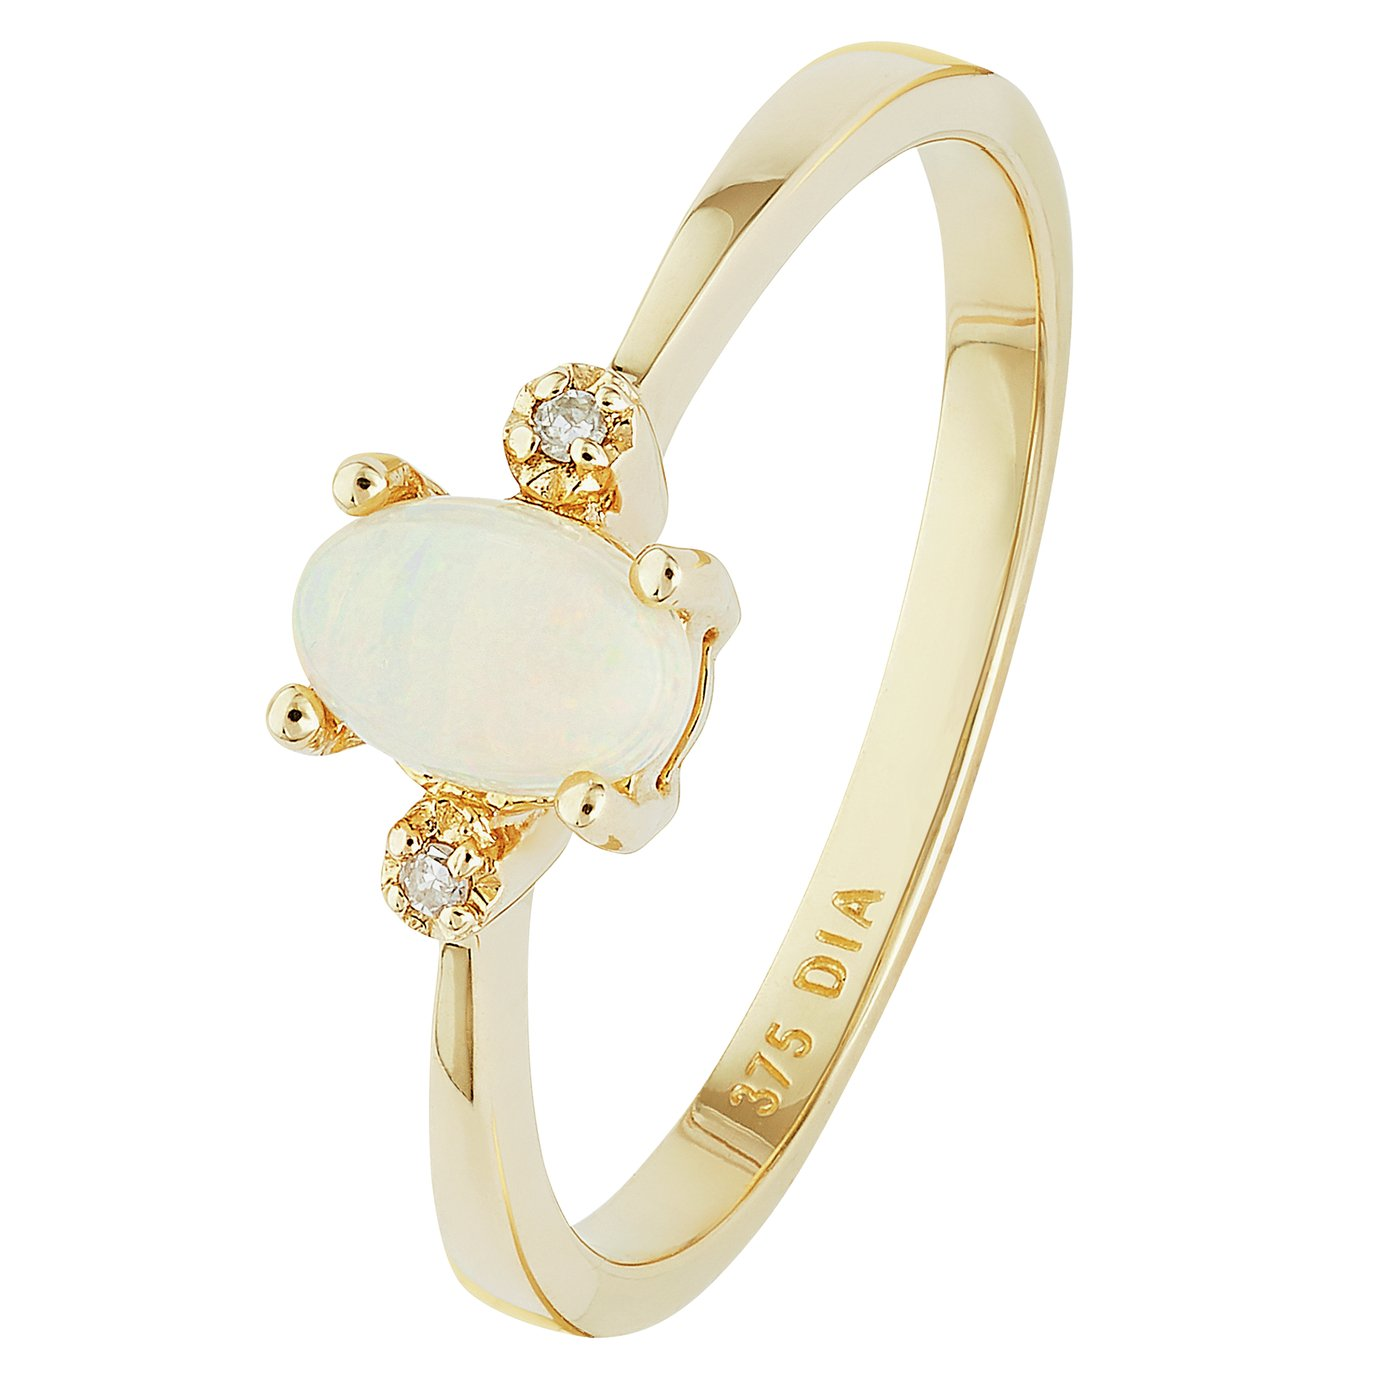 Revere 9ct Gold Opal and Diamond Accent Oval Ring - N